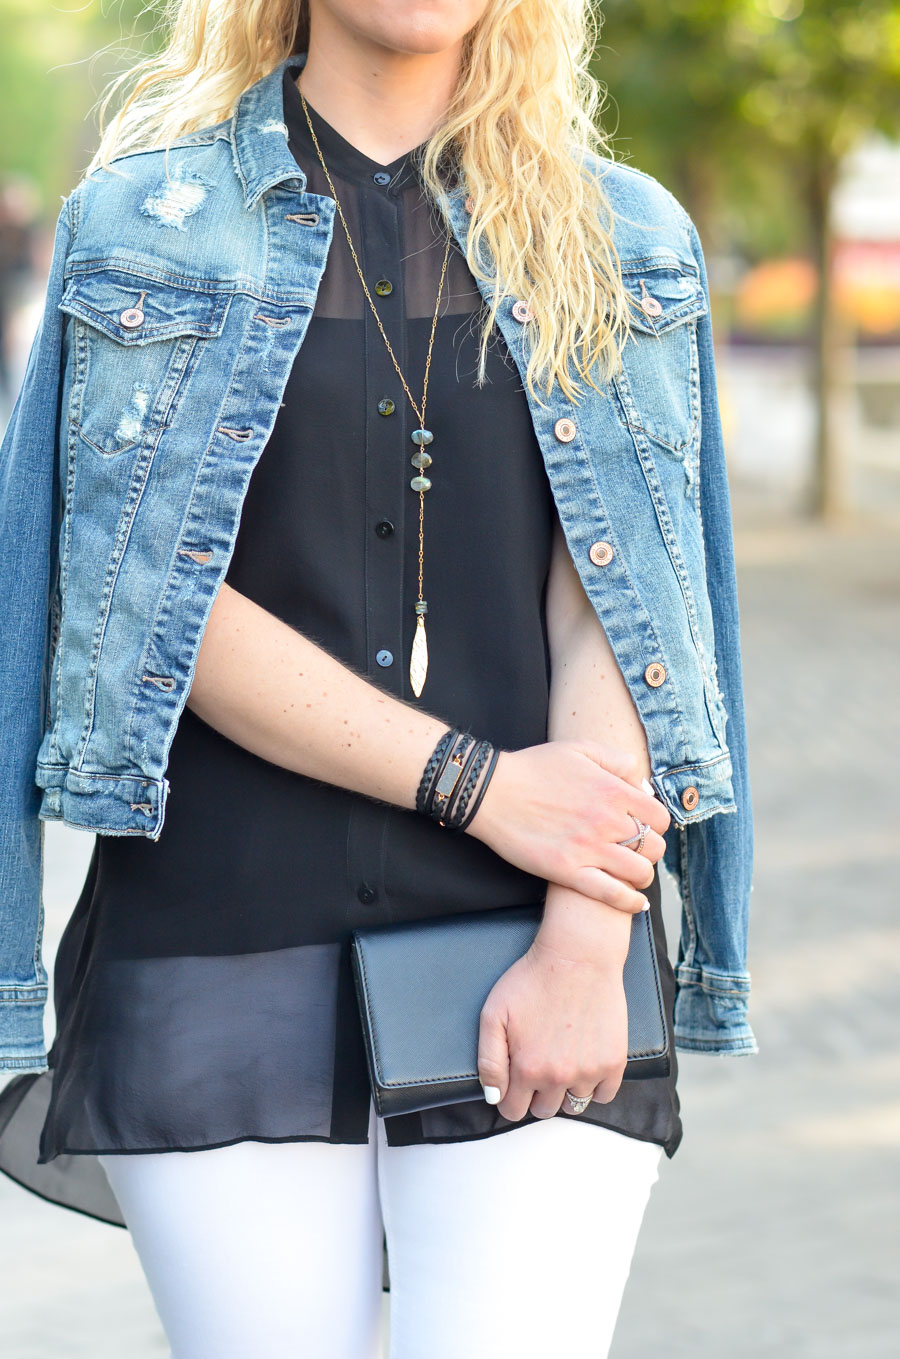 Black Top with White Jeans and Denim Jacket Outfit